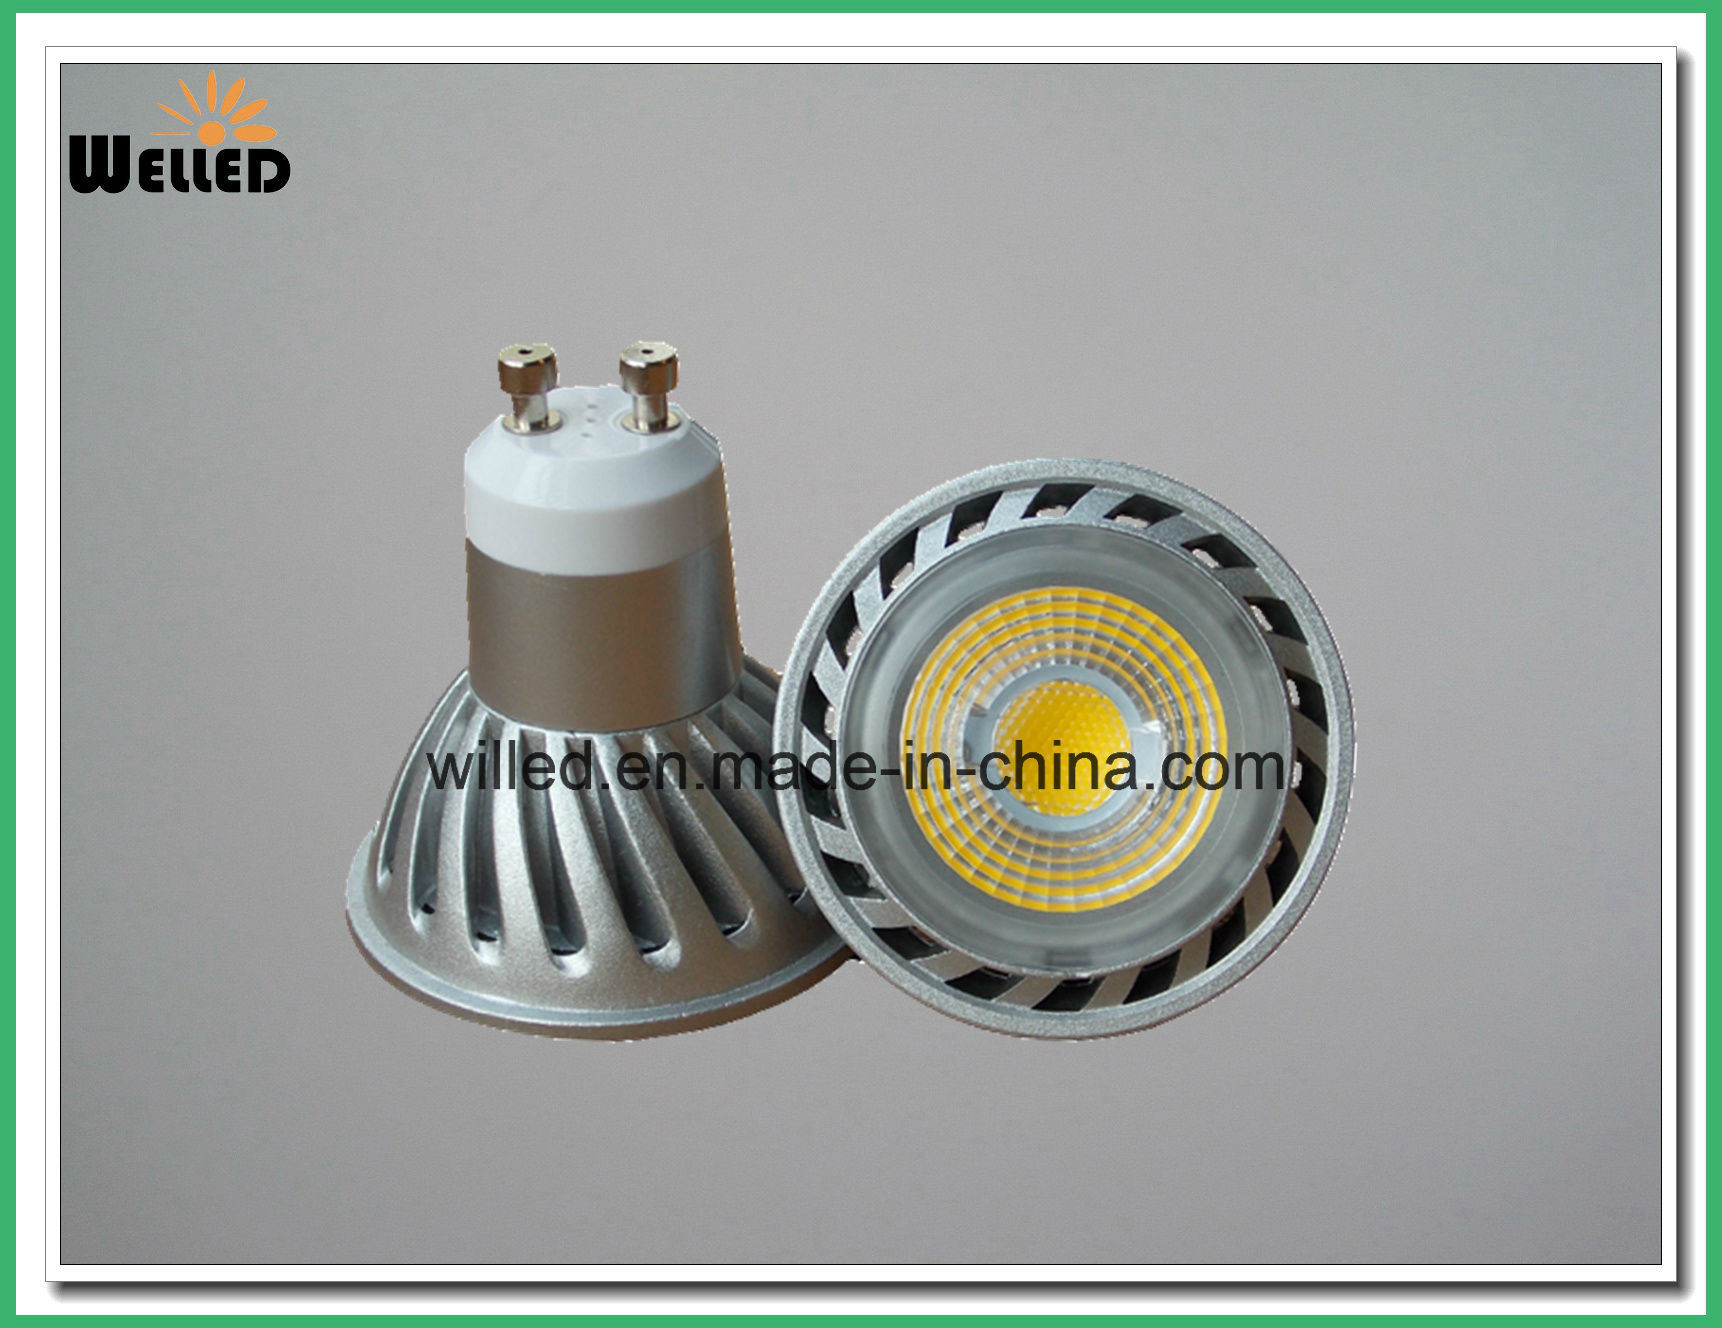 85-265VAC Dimmable GU10 LED Spotlight with LED Light for 25W 50W Halogen Replacement